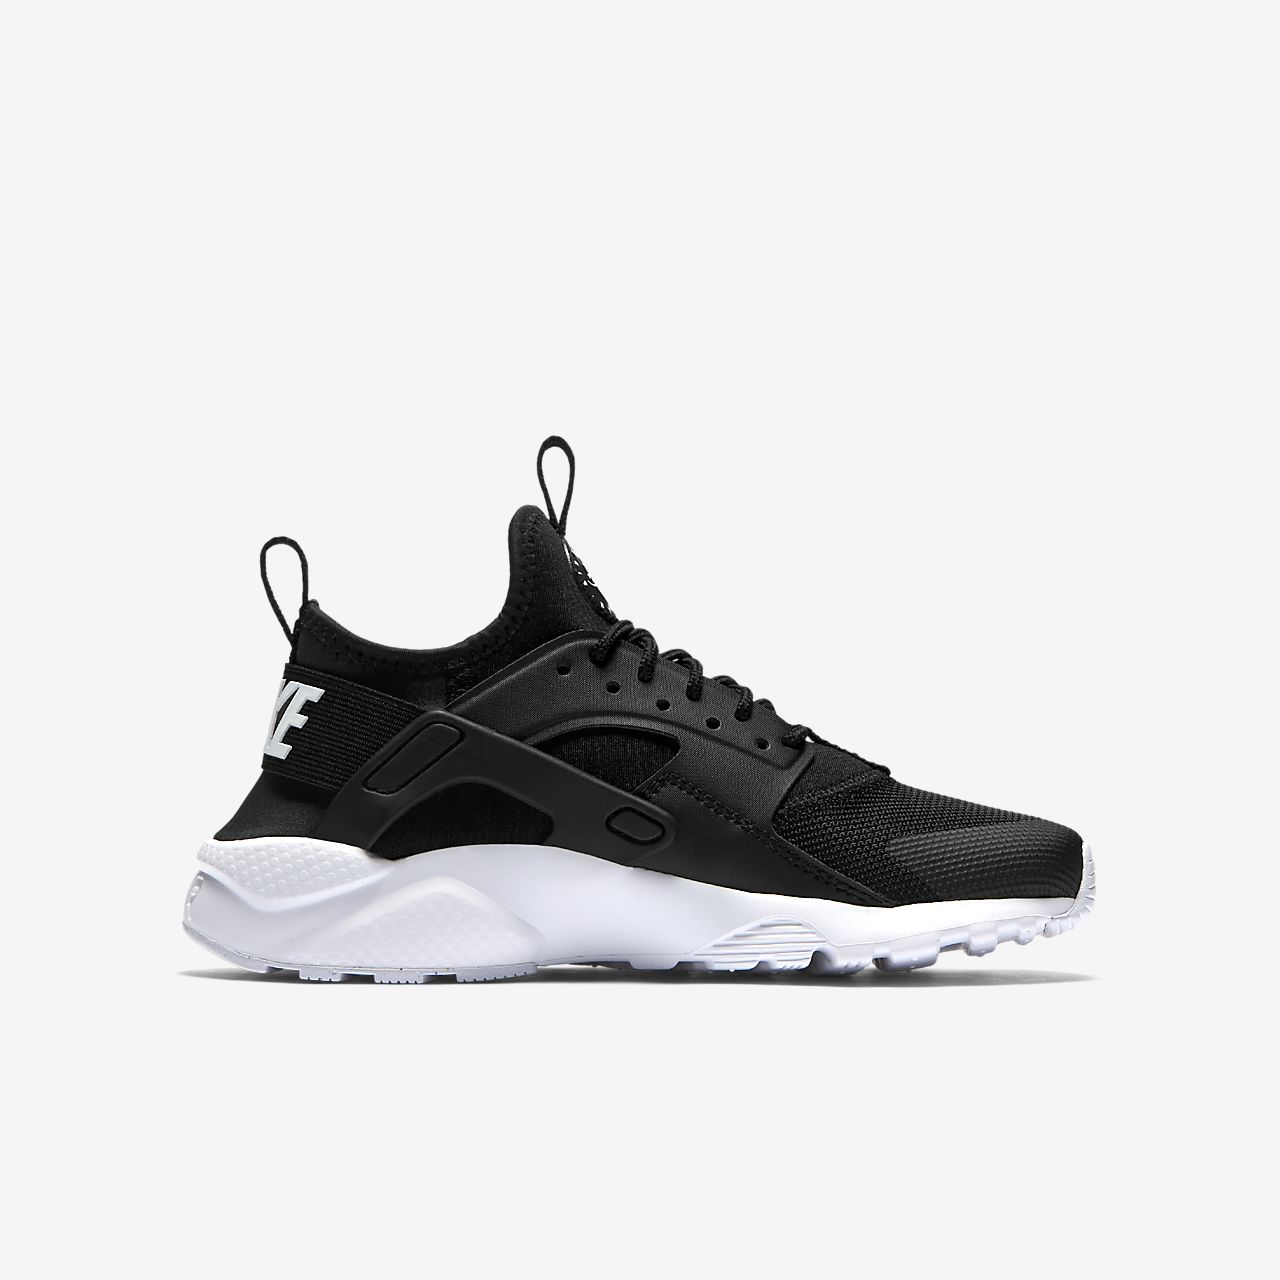 94cc5e977f67 Nike Air Huarache Ultra Older Kids  Shoe. Nike.com GB